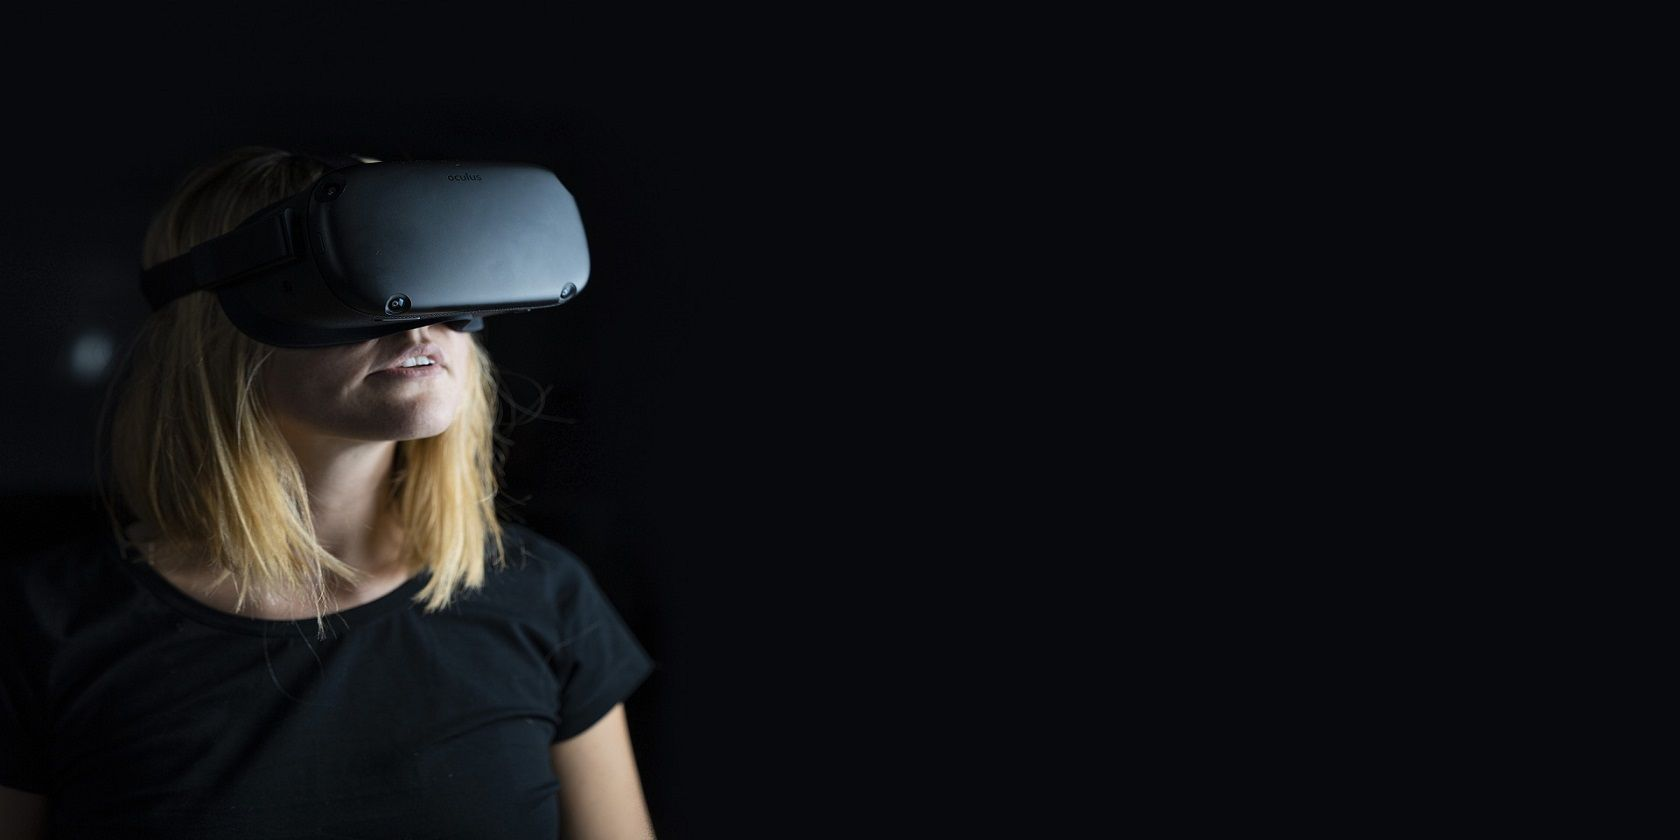 Should You Trust Facebook With Oculus Quest 2 Privacy?